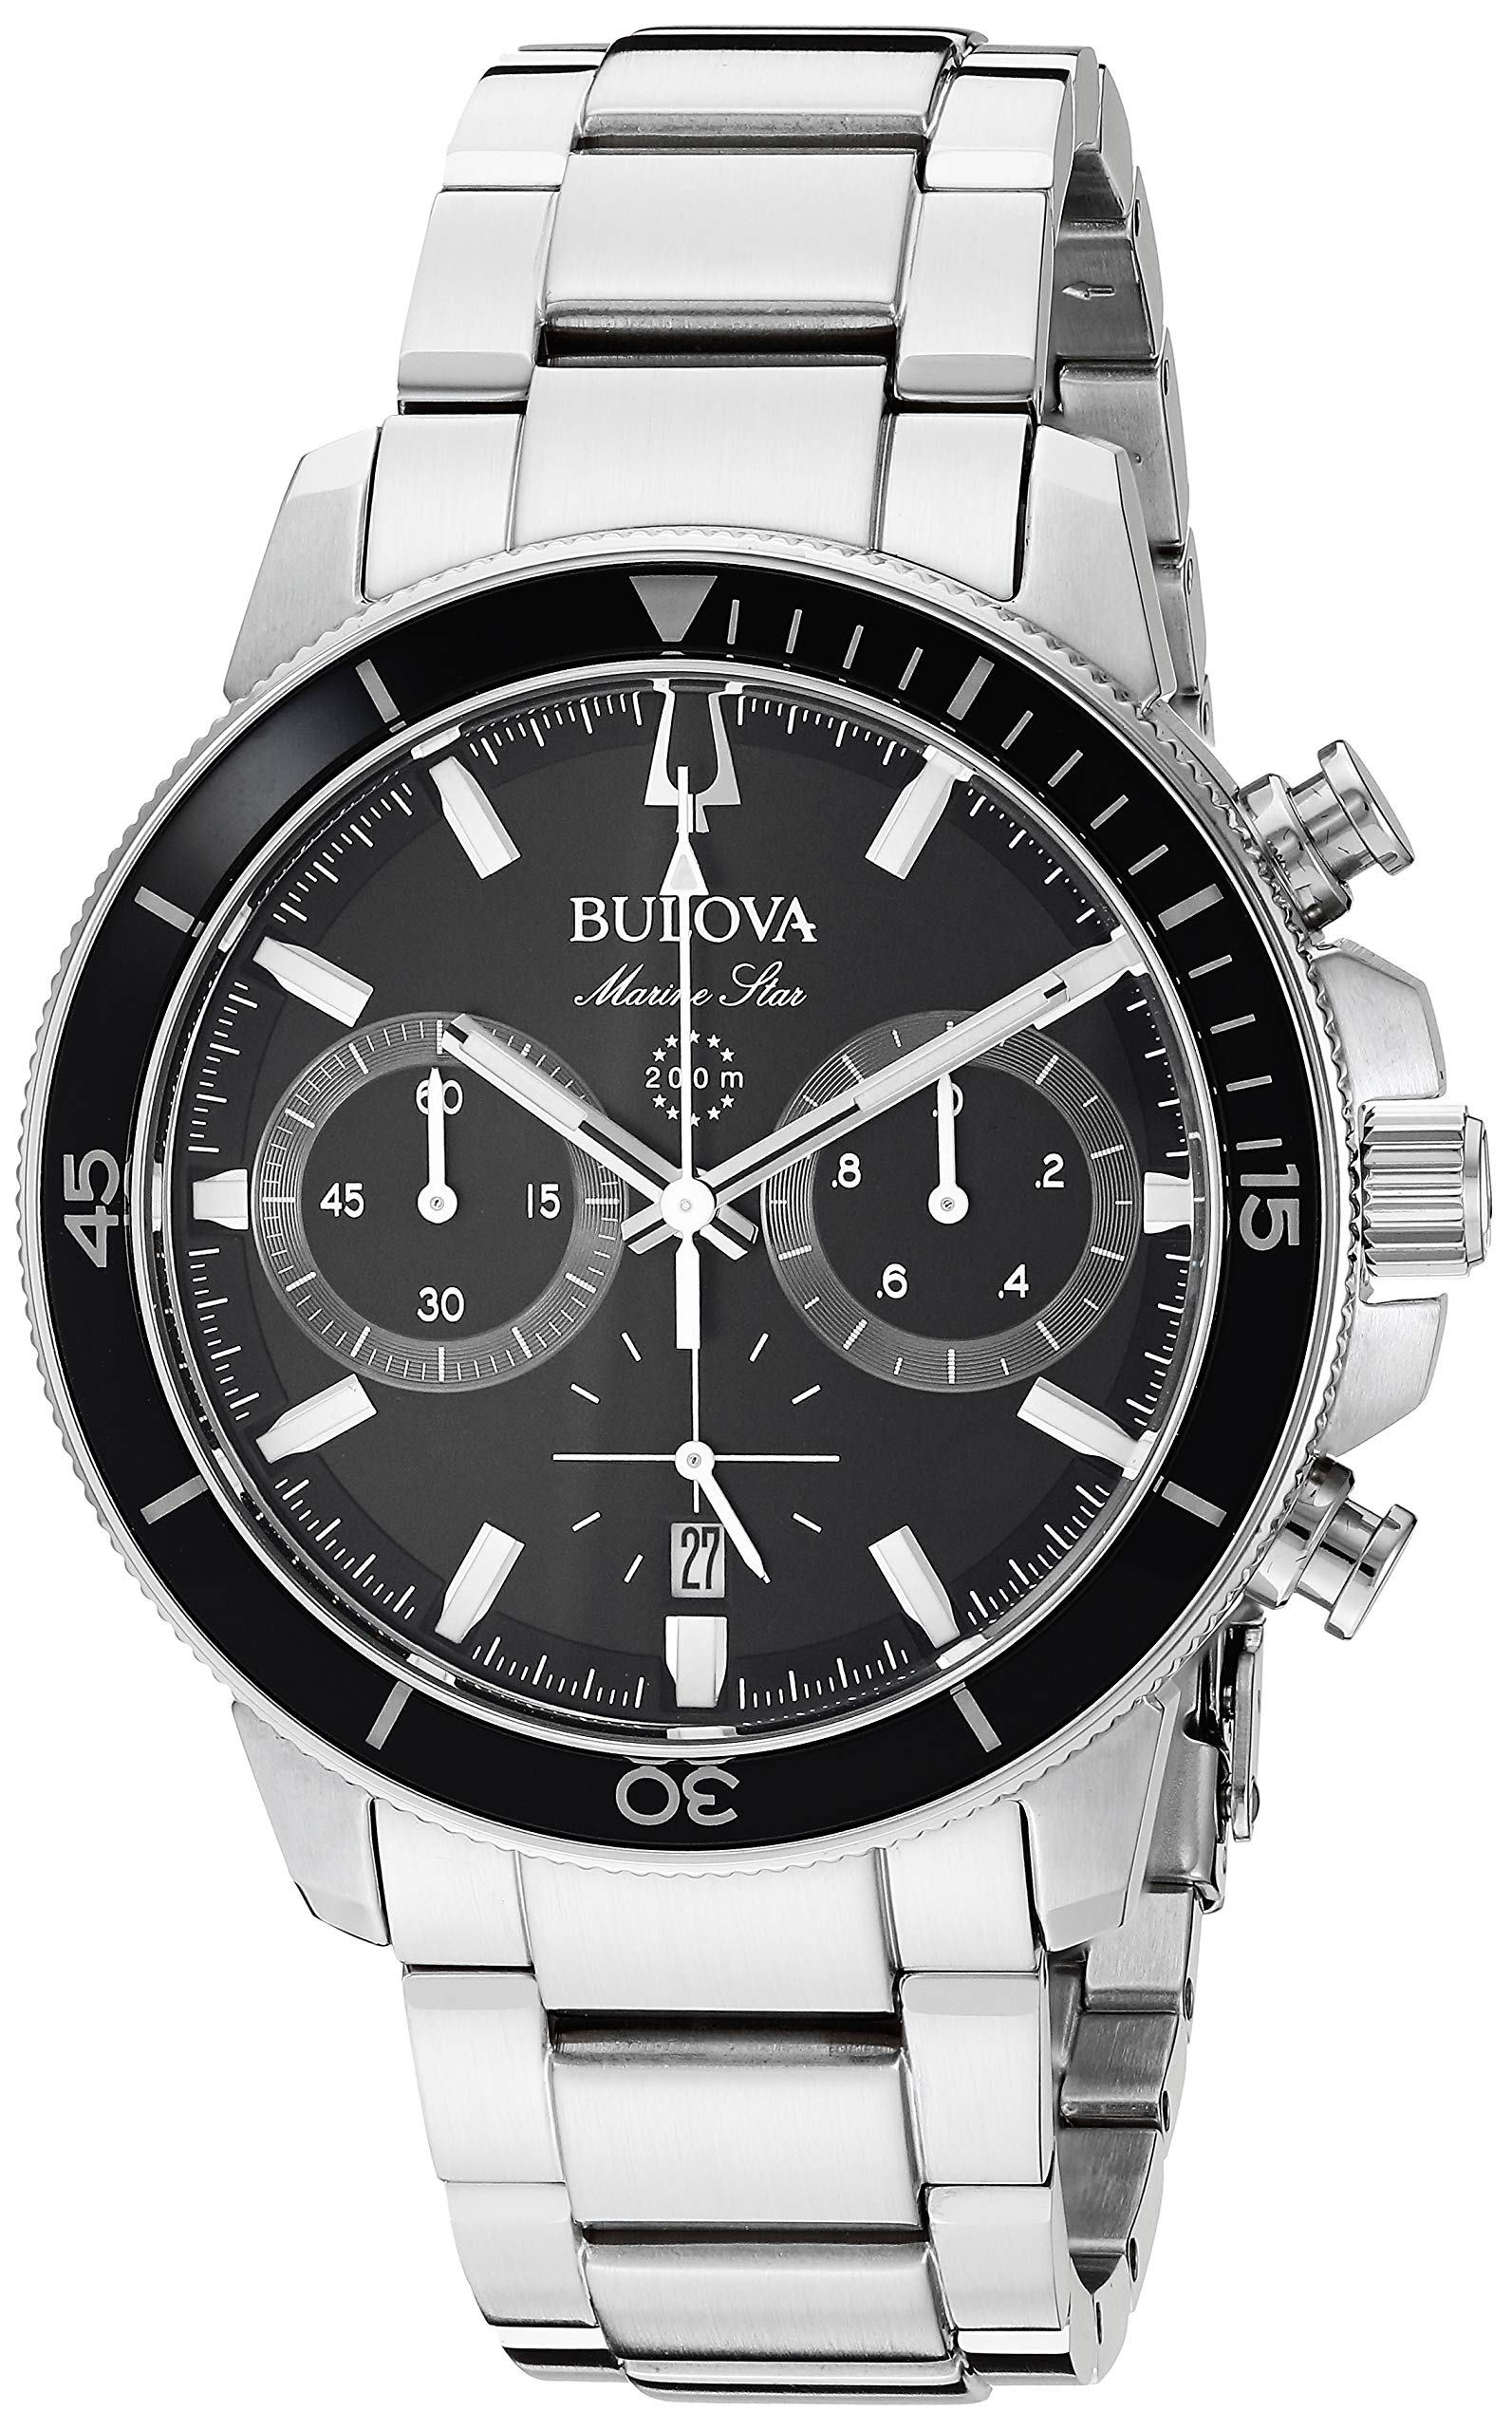 bulova men's black stainless steel chronograph watch